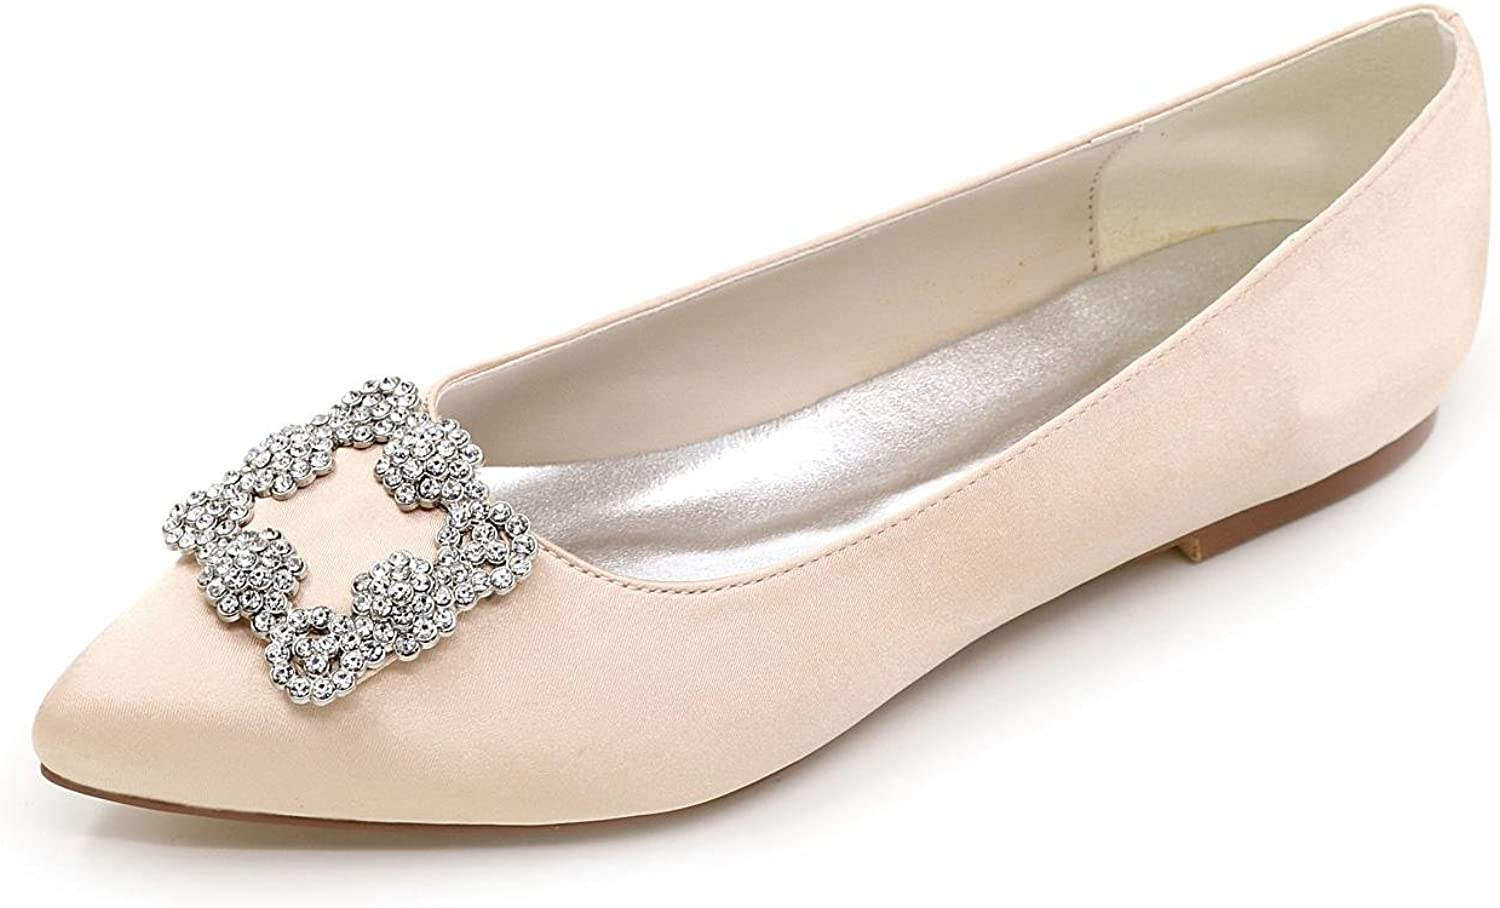 L@YC F Women Wedding shoes Fine Heel Pointed to Toe Pump High Heels Wedding Party Evening & More Available colors